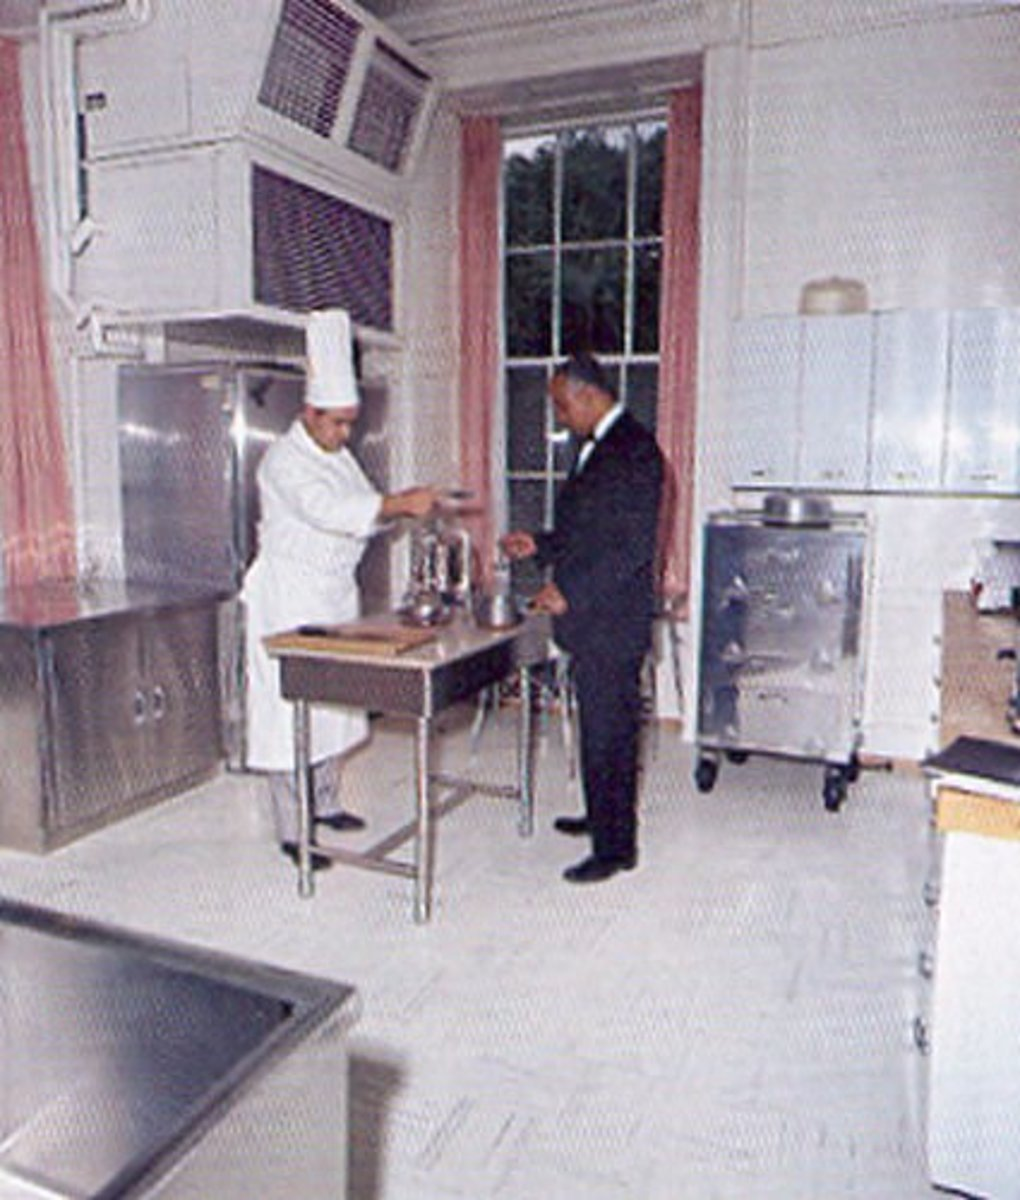 Executive Chef Rene Verdon and butler John Ficklin in Jackie Kennedy's First Family kitchen in 1961